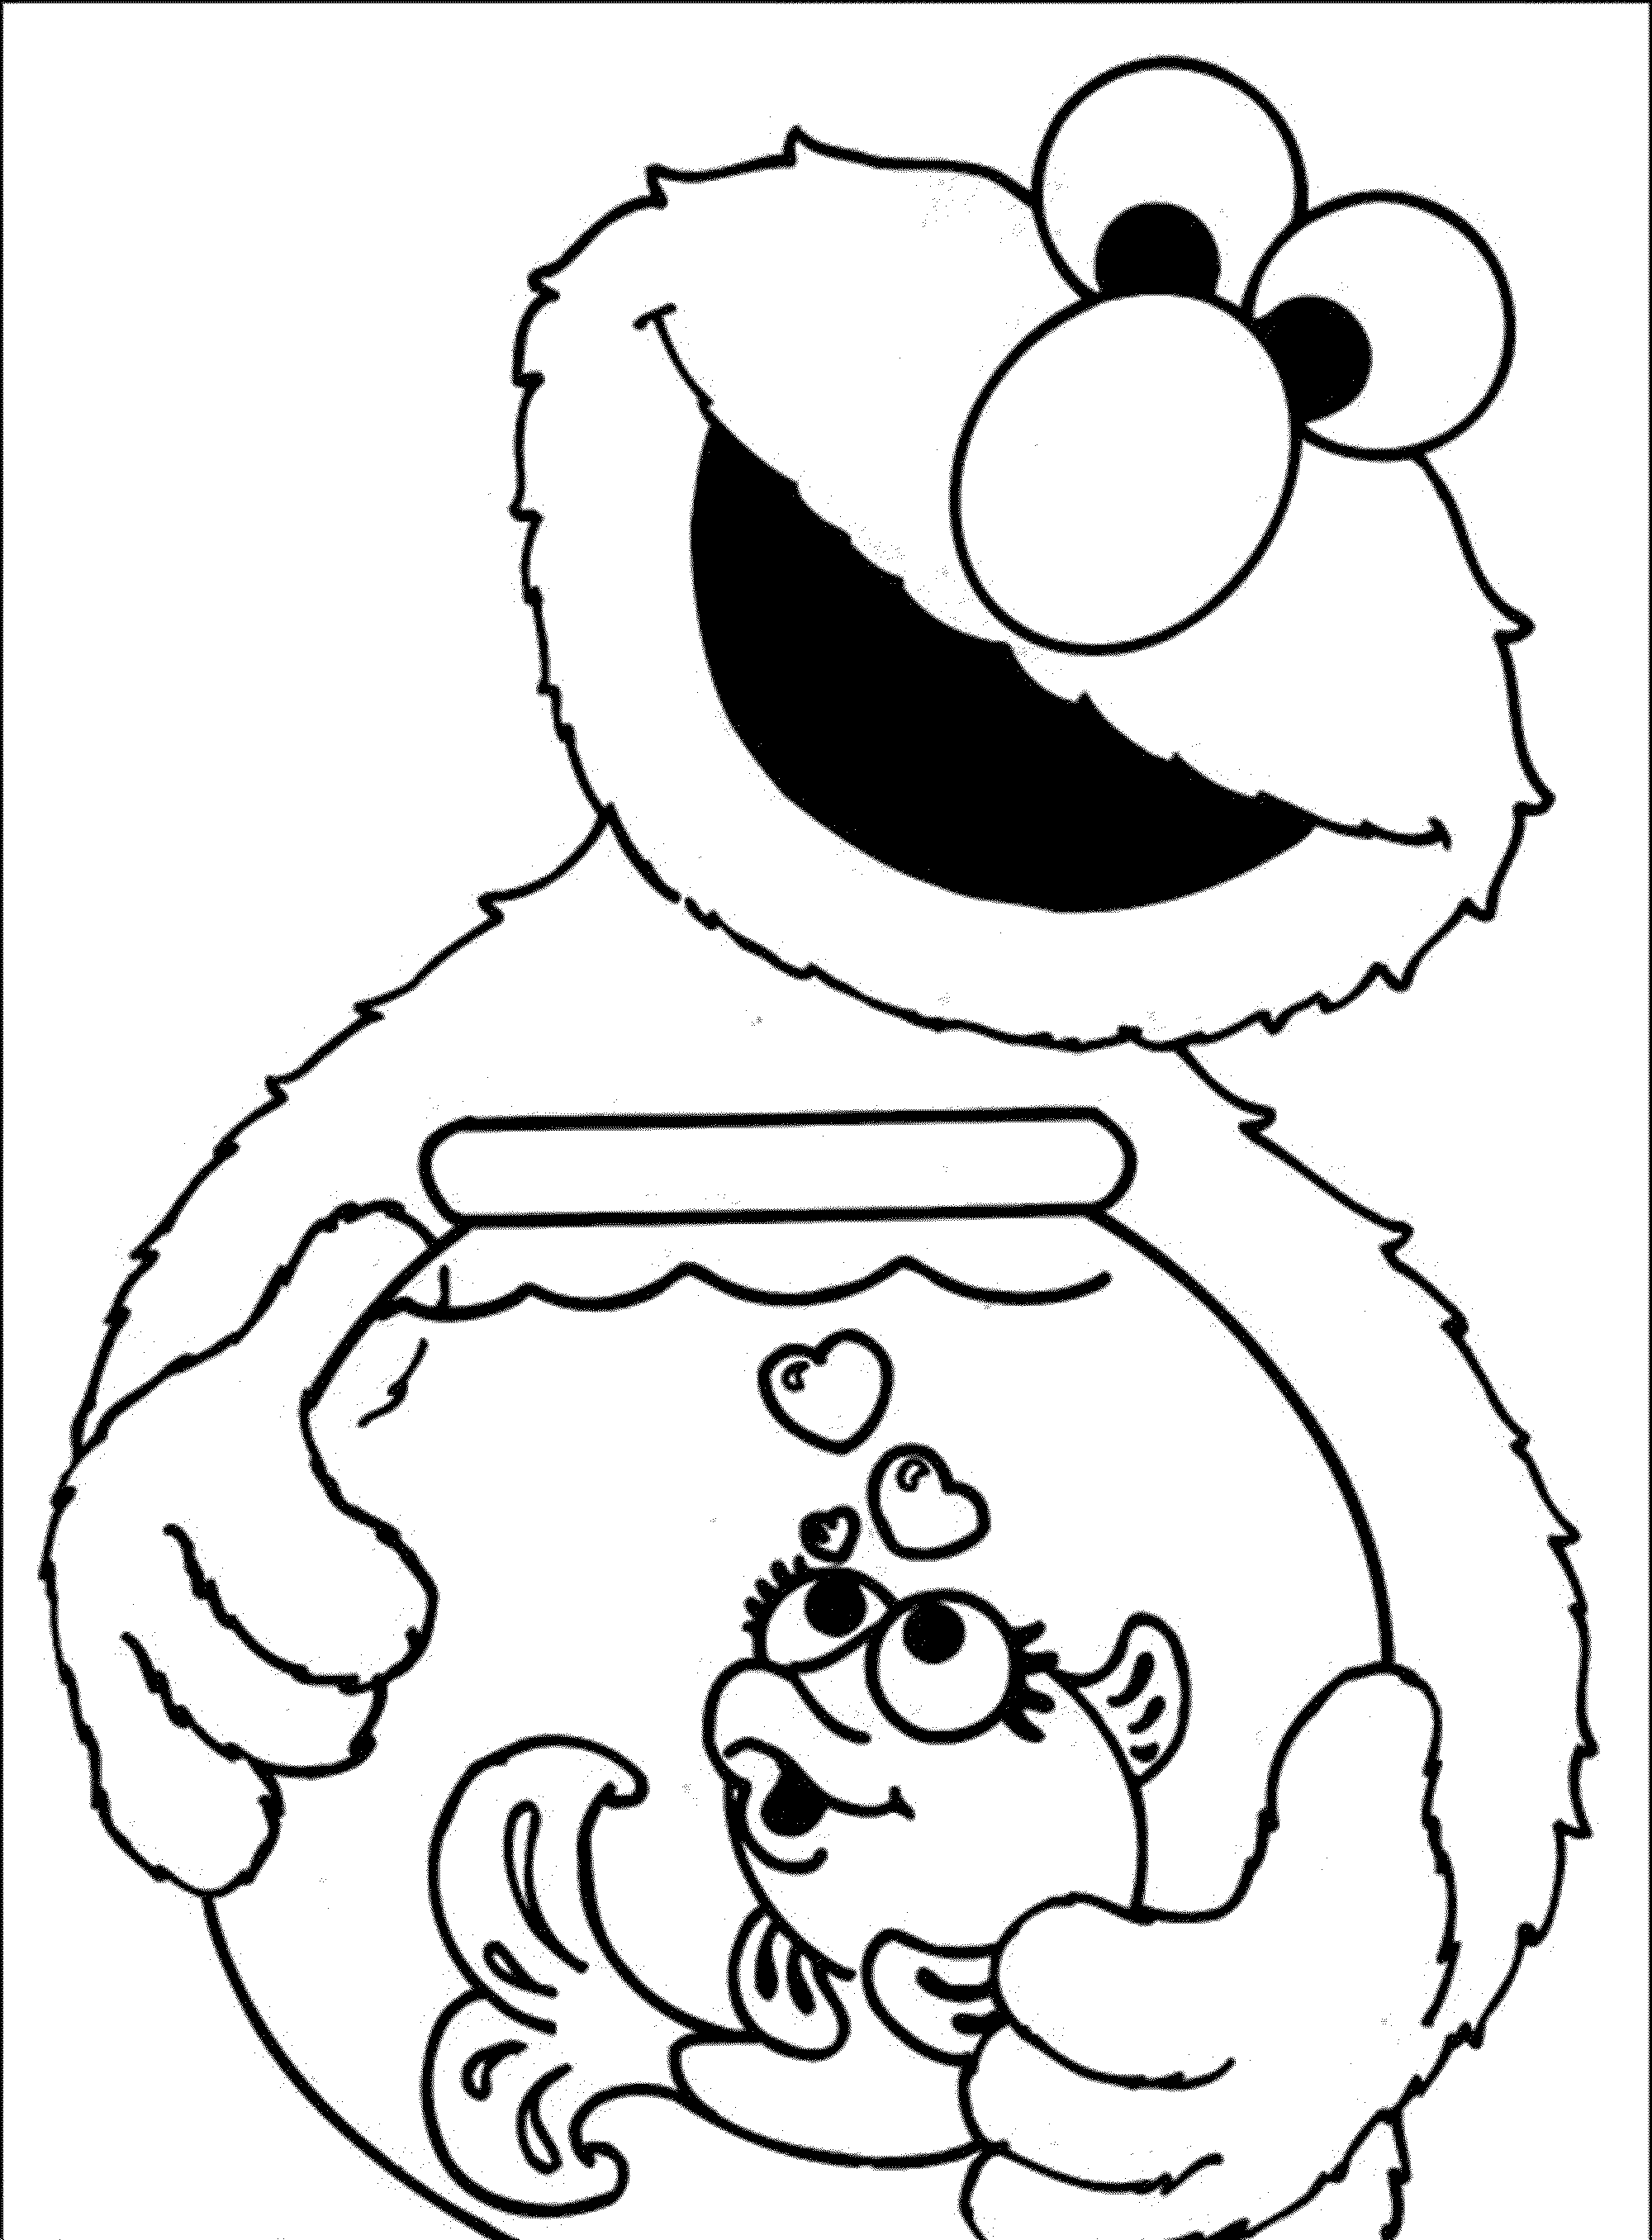 Elmo And Friends Coloring Pages